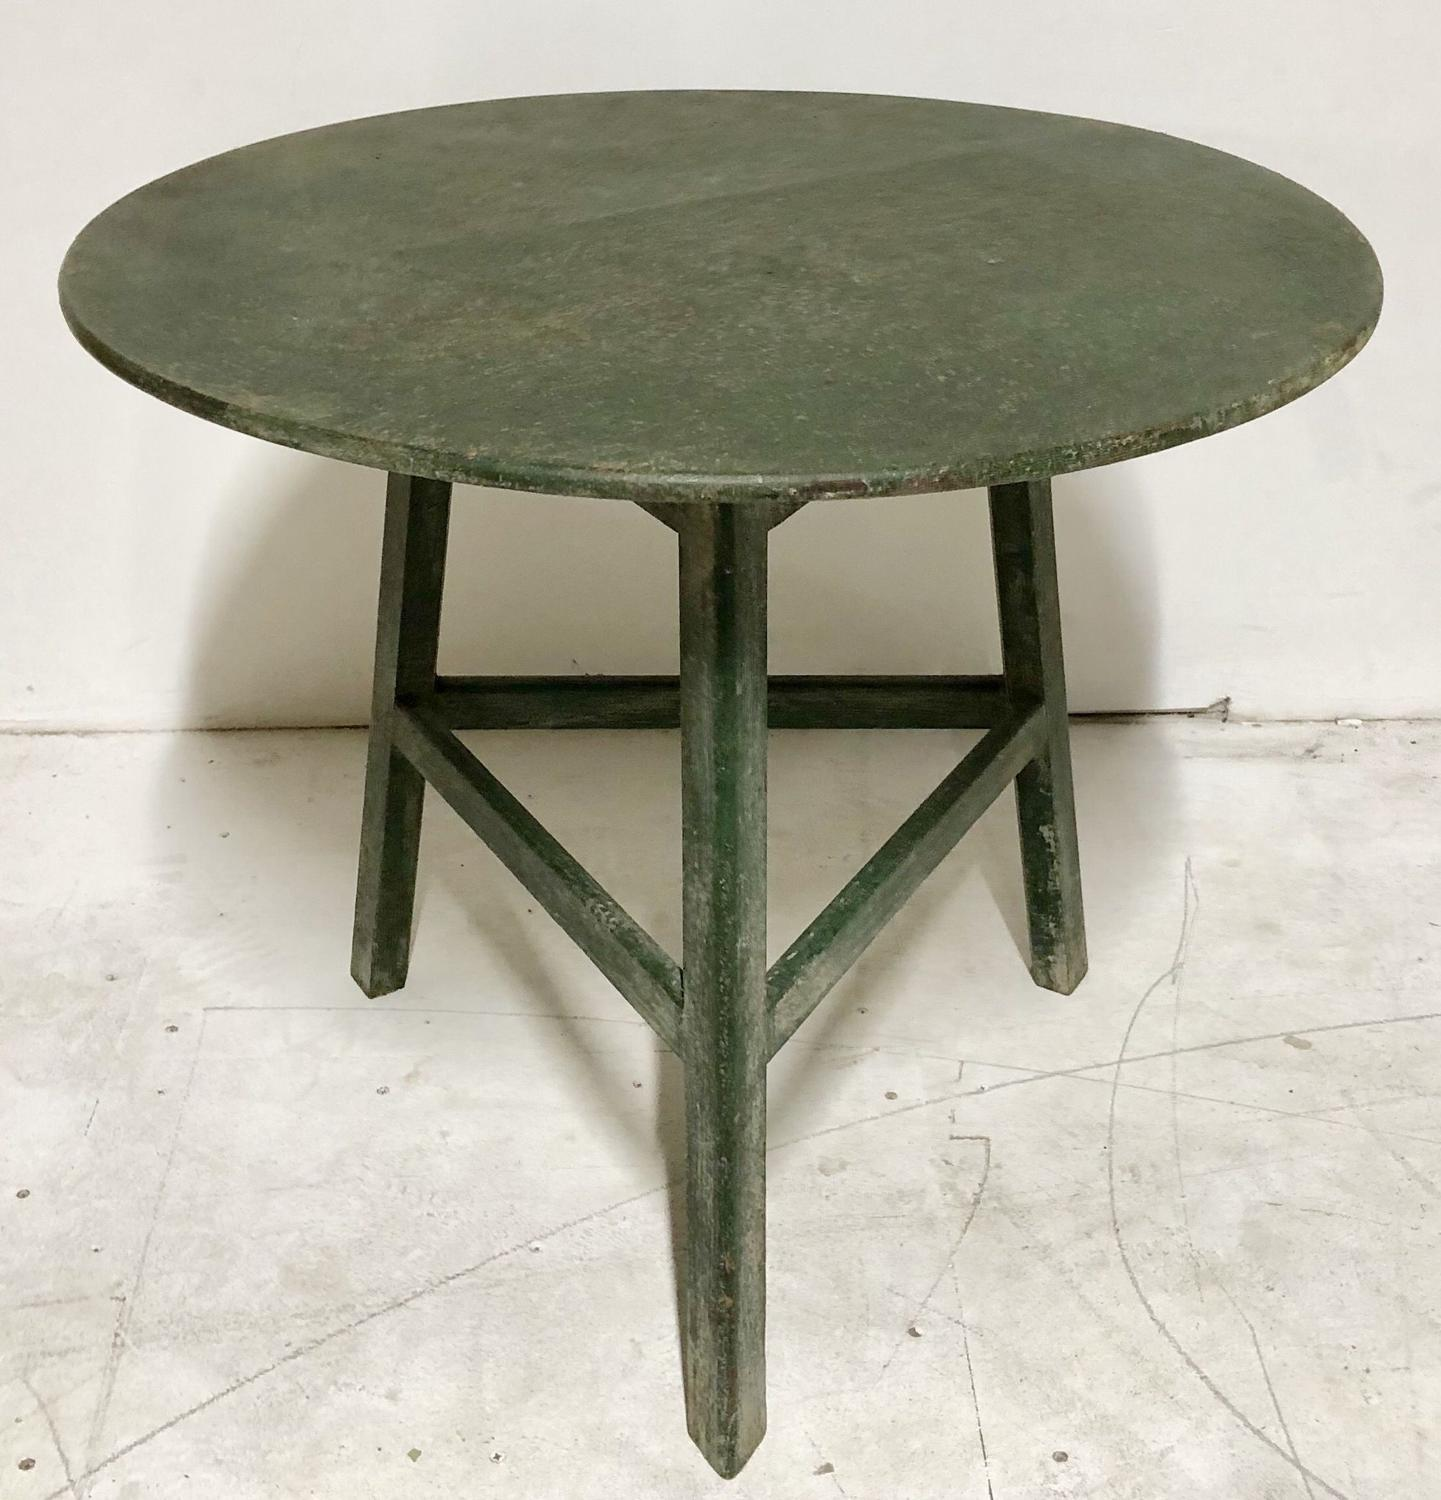 A painted Cricket table